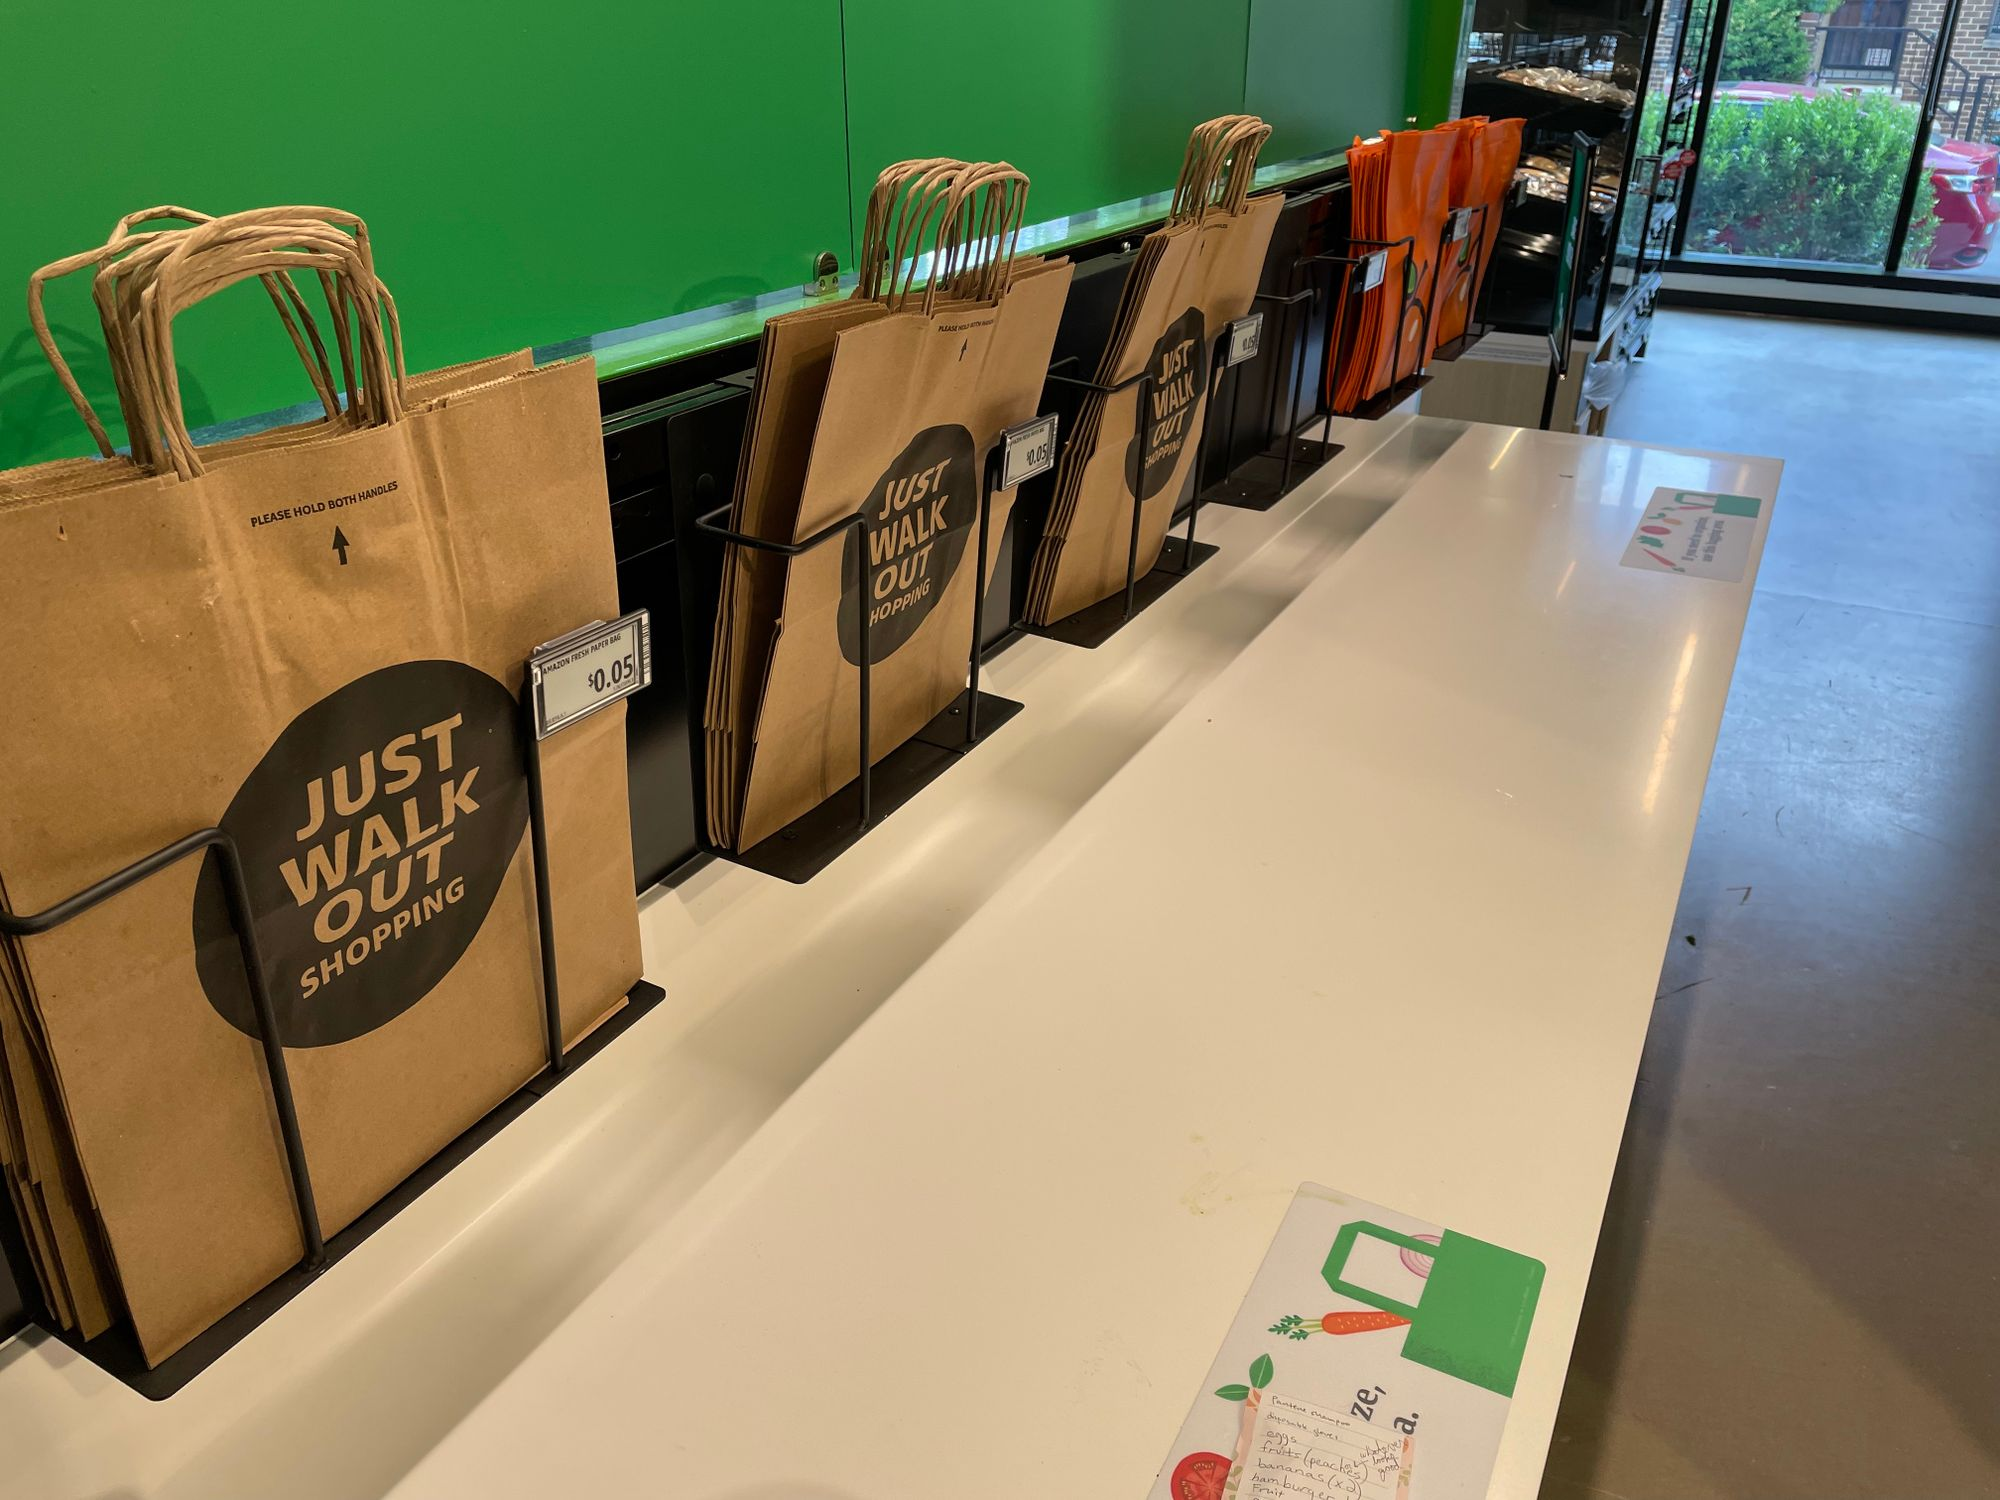 Amazon's assault on the grocery industry arrived in my hometown of Washington DC last month. A new Amazon Fresh store opened in the upscale Logan Ci